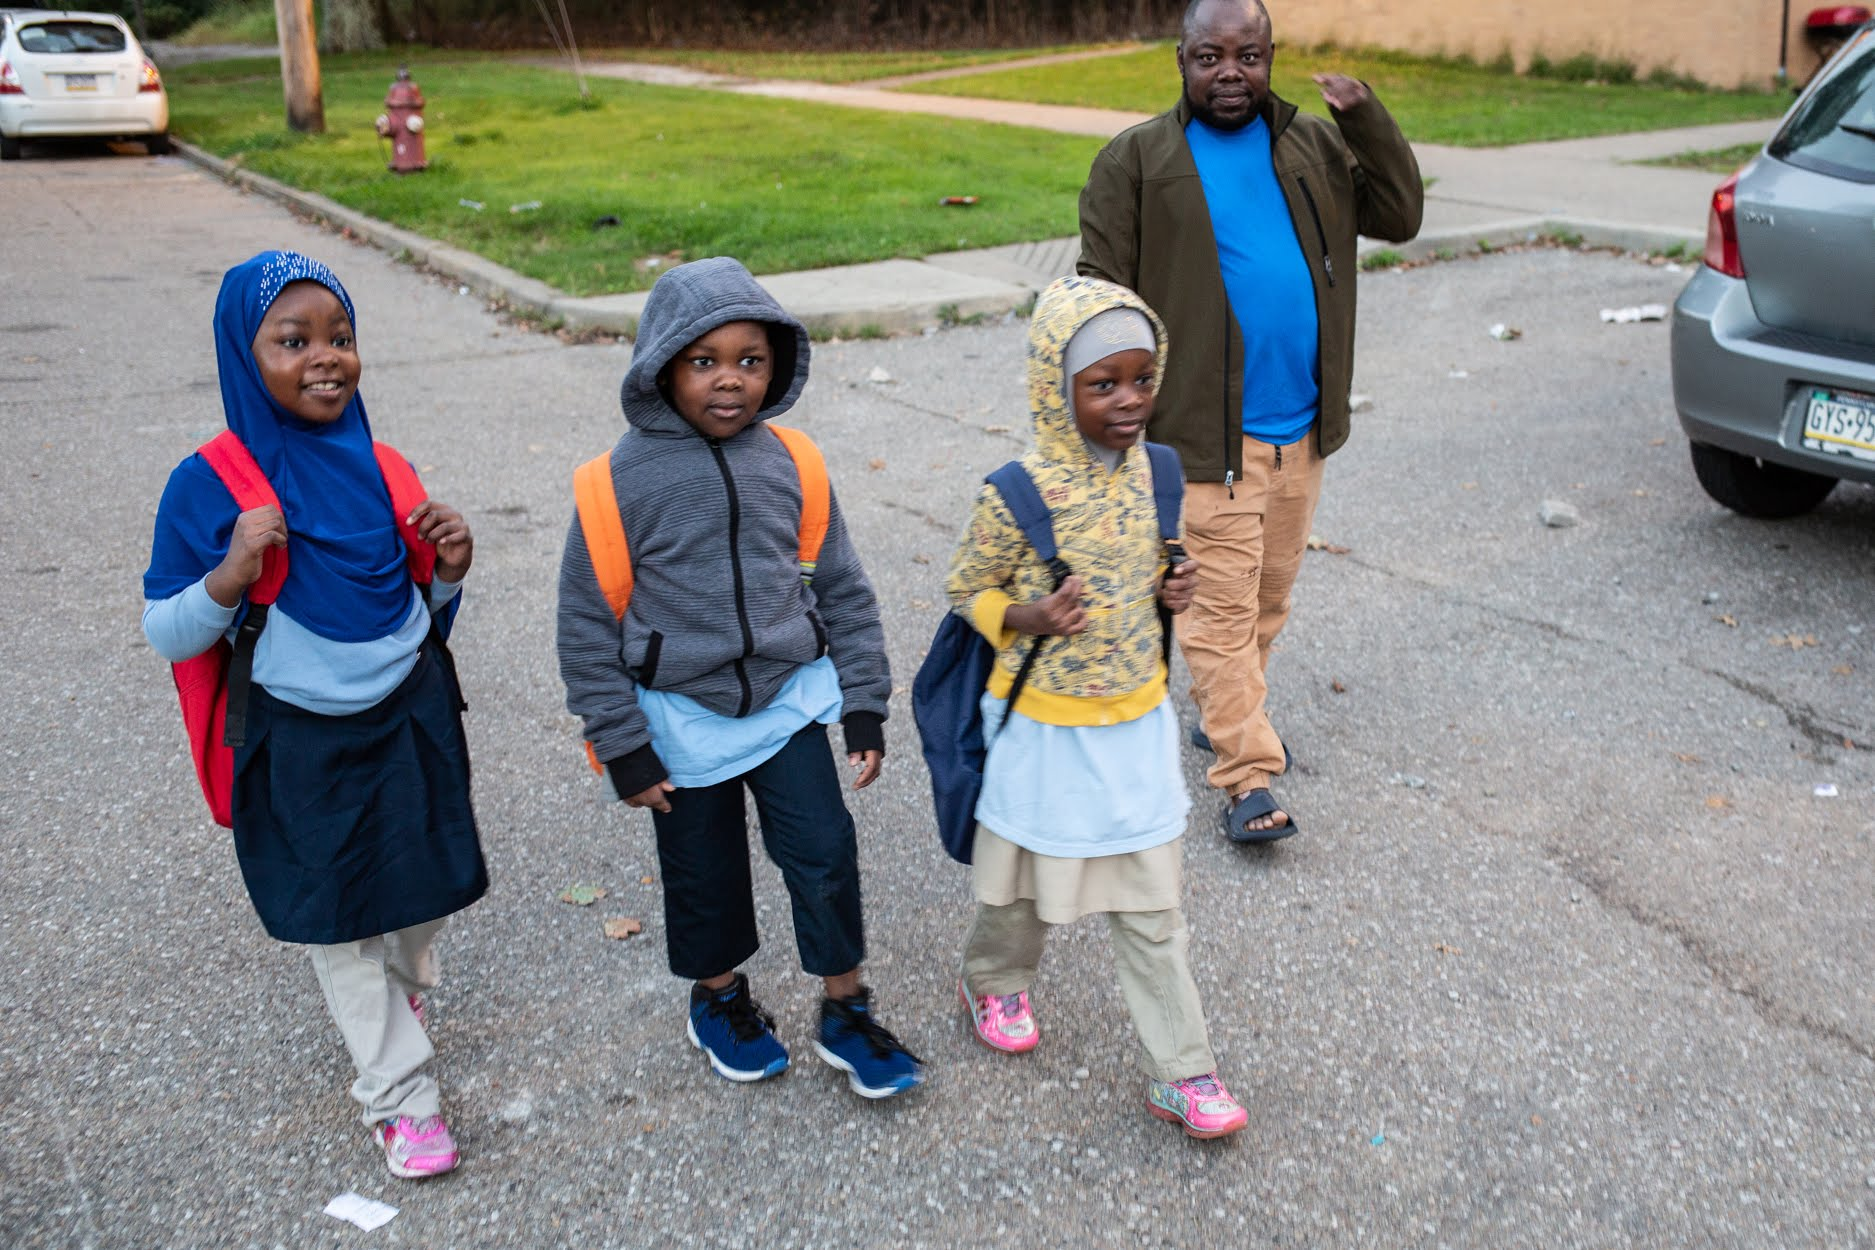 Juma Mkomwa walks his children, Arbay, Mohamed and Halima, to the school bus stop near the family's home in Northview Heights on Oct. 10. (Photo by John Altdorfer/PublicSource)